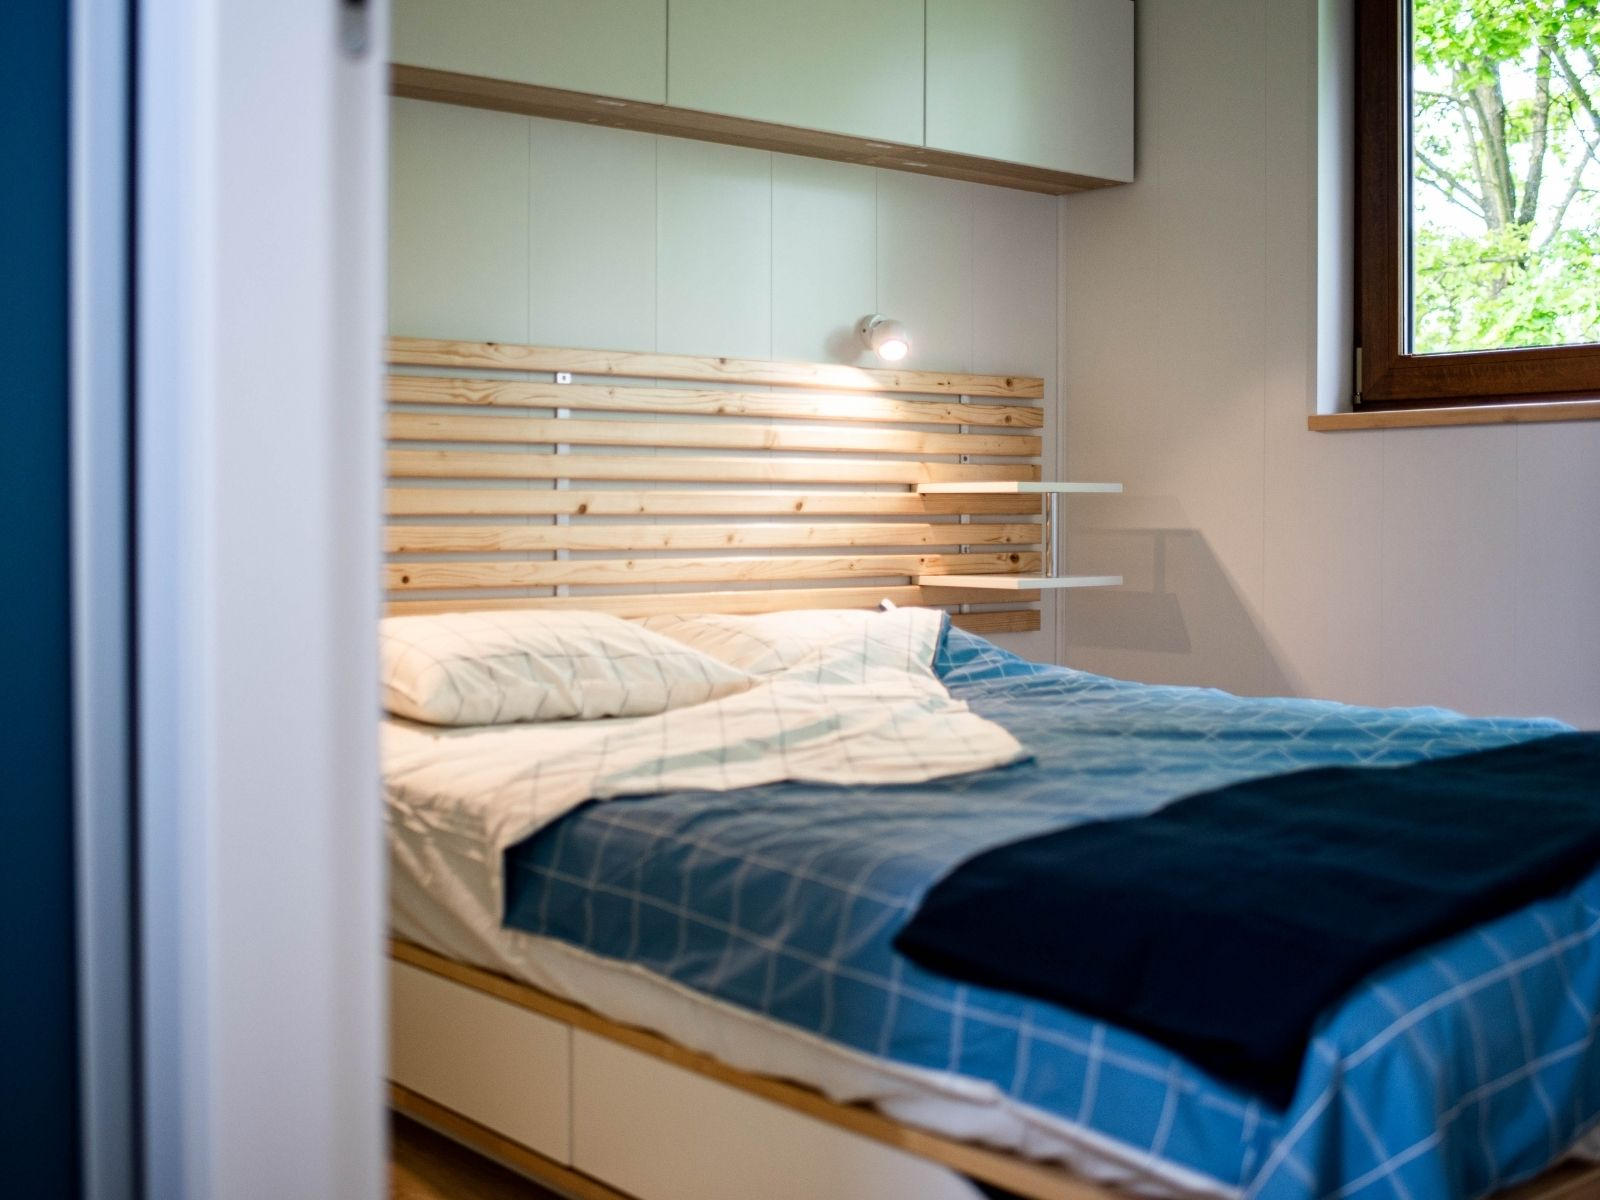 JPJ Mobile House - Producent domów mobilnych (45)